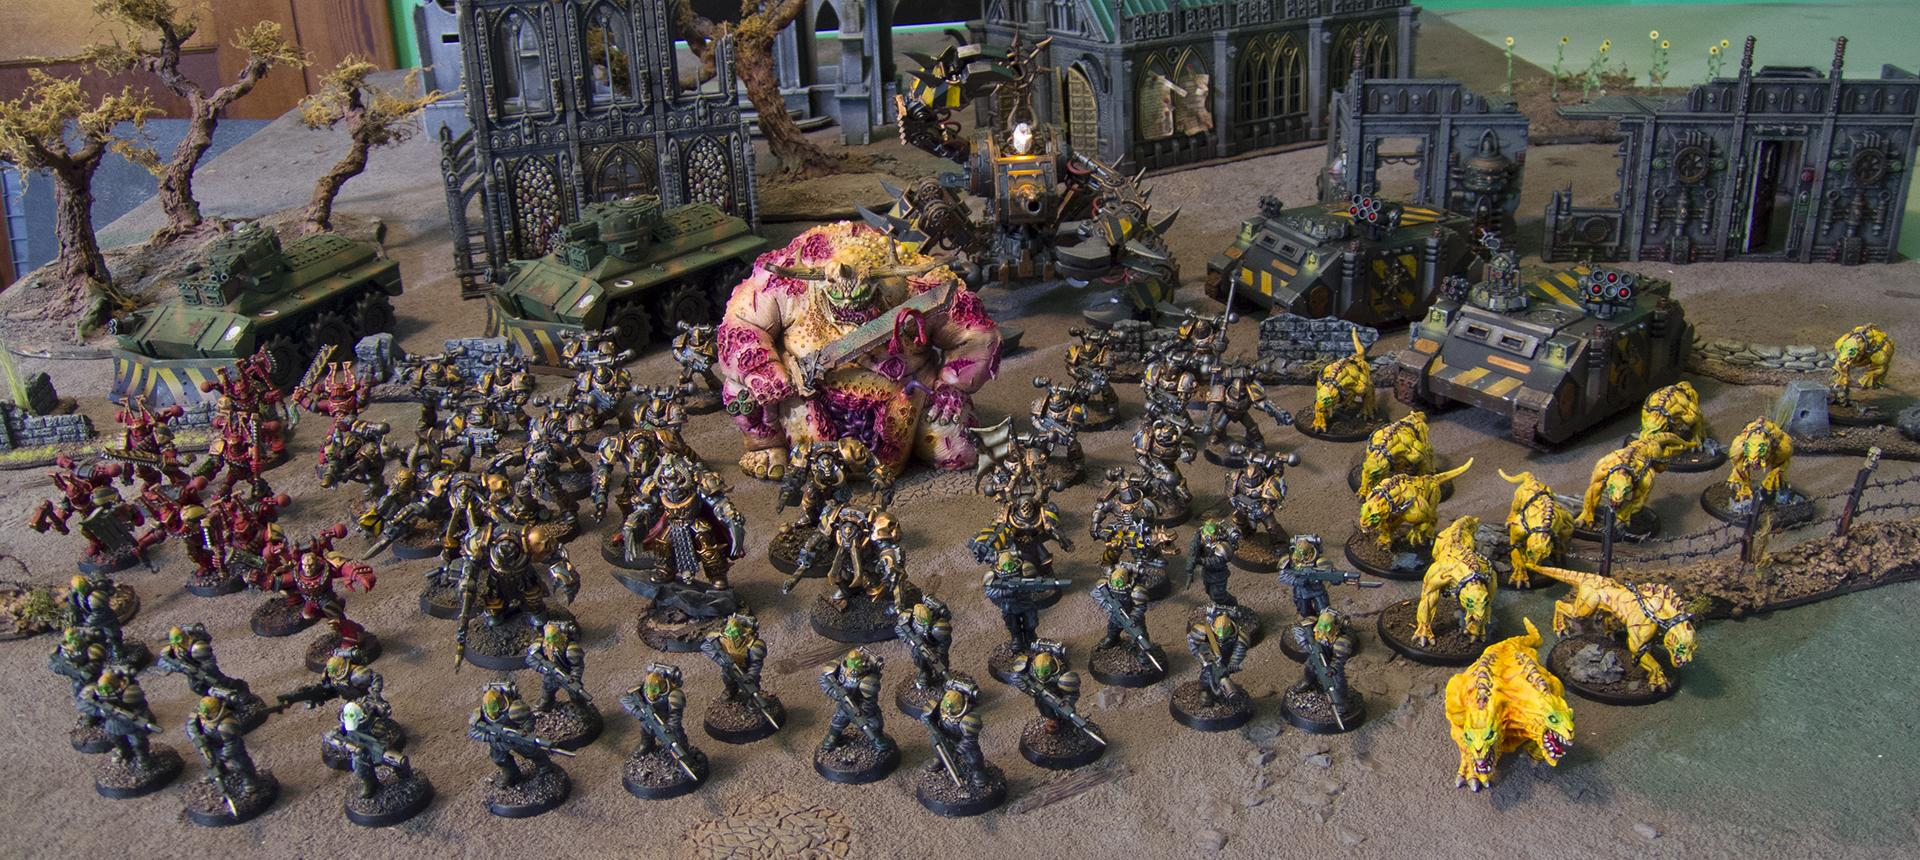 Army, Chaos, Chaos Space Marines, Great Unclean One, Guo, Iron Warriors, Nurgle, Ouze